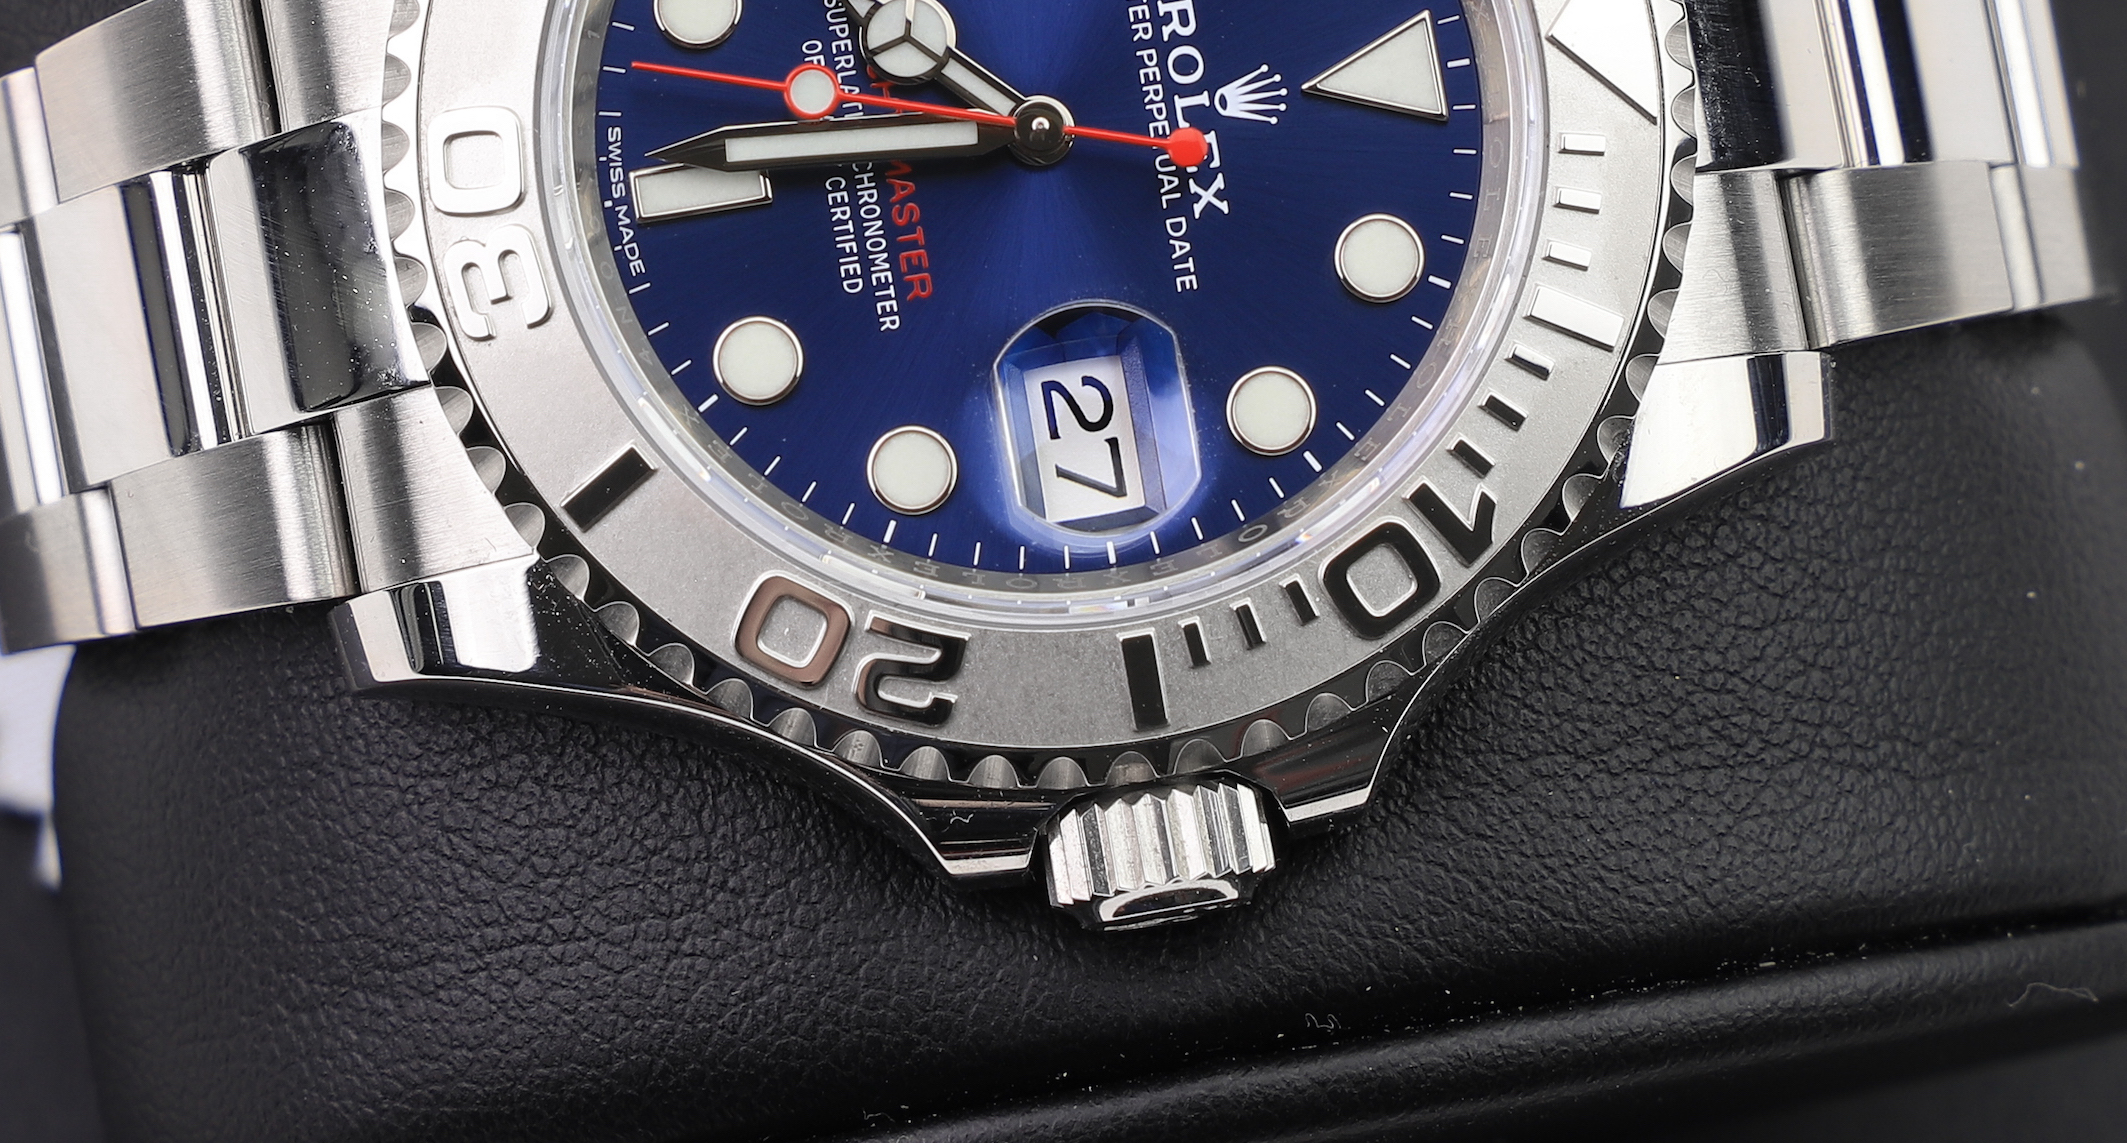 Rolex cyclops guide